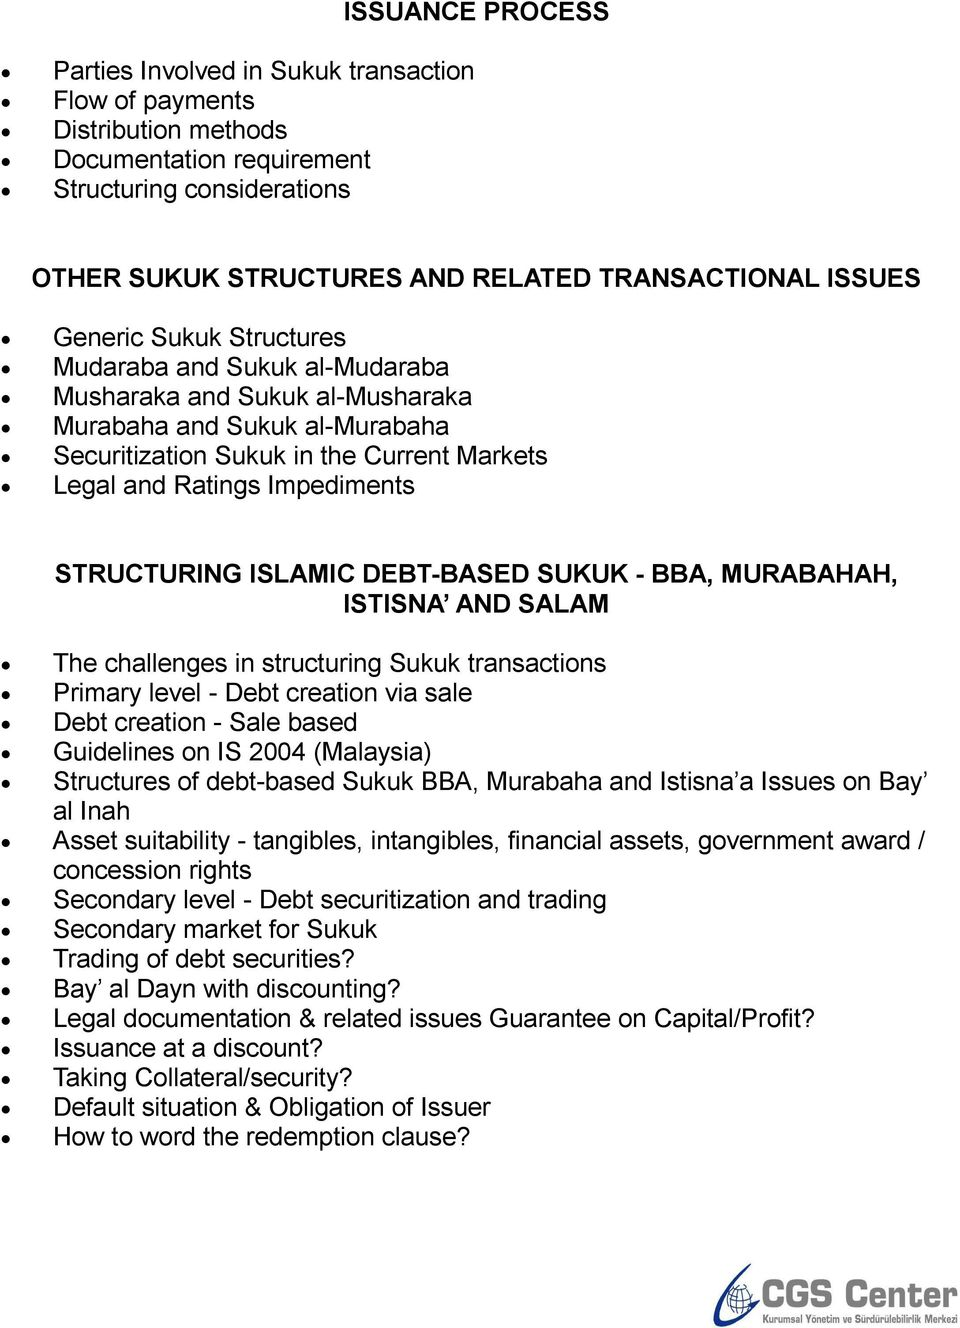 Impediments STRUCTURING ISLAMIC DEBT-BASED SUKUK - BBA, MURABAHAH, ISTISNA AND SALAM The challenges in structuring Sukuk transactions Primary level - Debt creation via sale Debt creation - Sale based